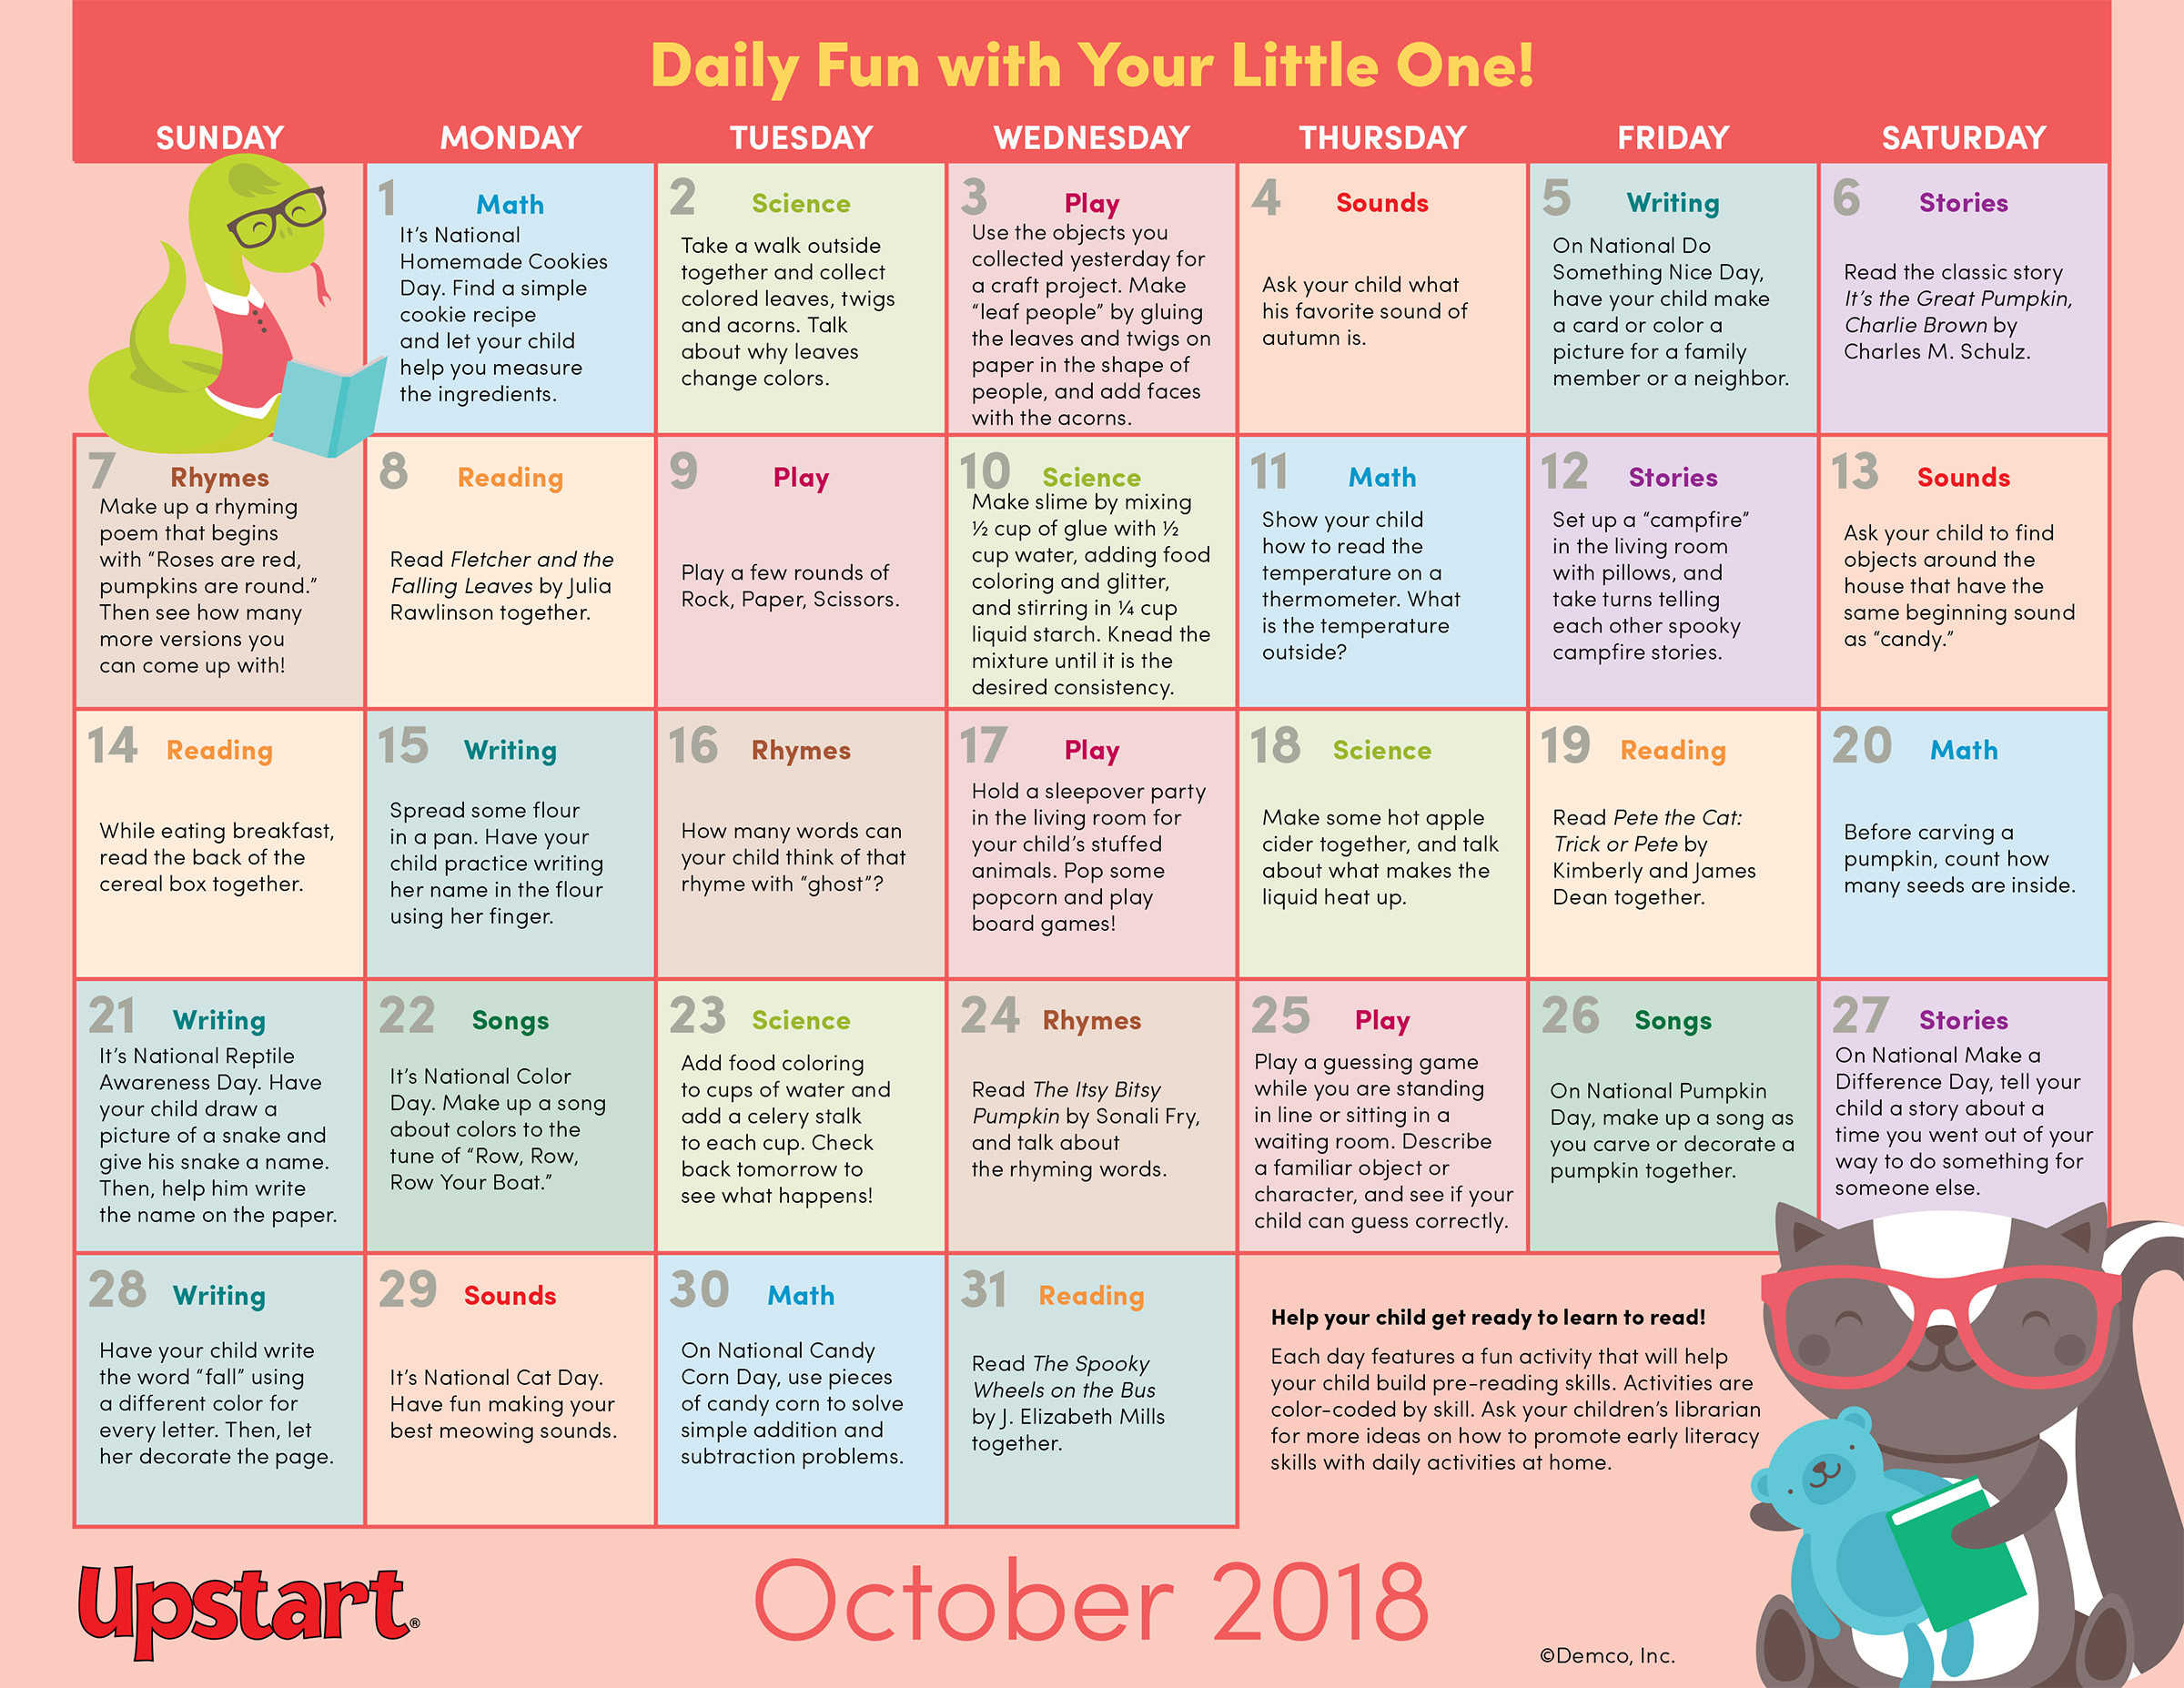 Early Literacy Activities Calendar — October 2018